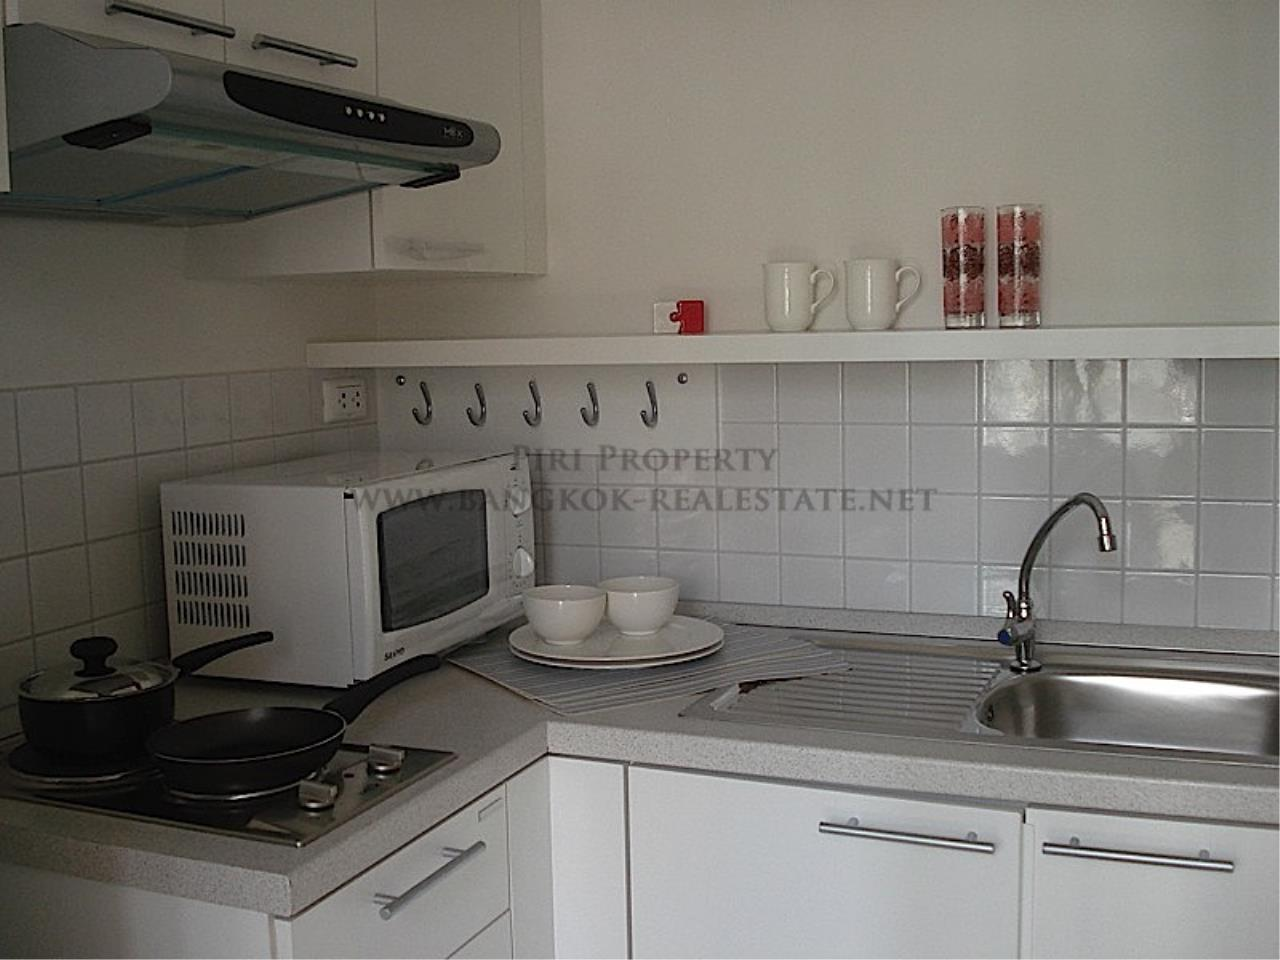 Piri Property Agency's Condo One X - One Bedroom for Rent 9